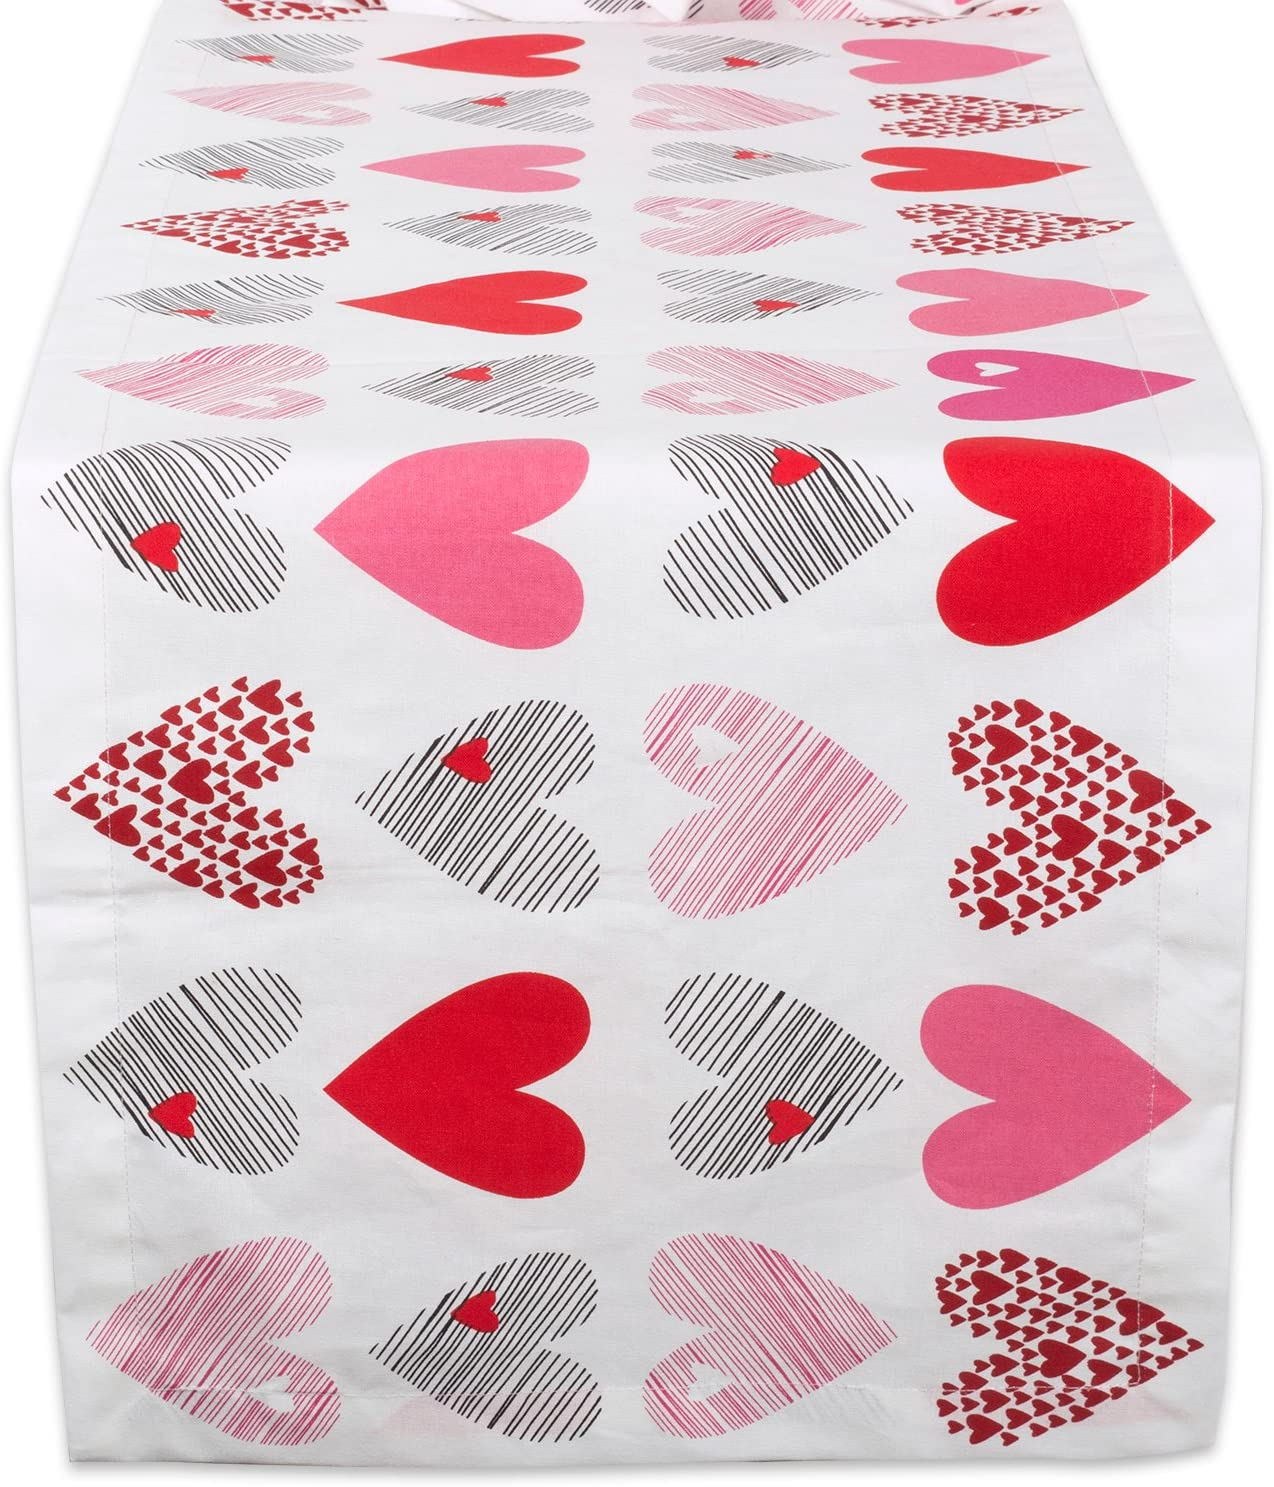 "DII 100% Cotton, Machine Washable, Printed Kitchen Table Runner For Mother's Day, Valentin's Day and Everyday Use - 14x108"", Hearts Collage"